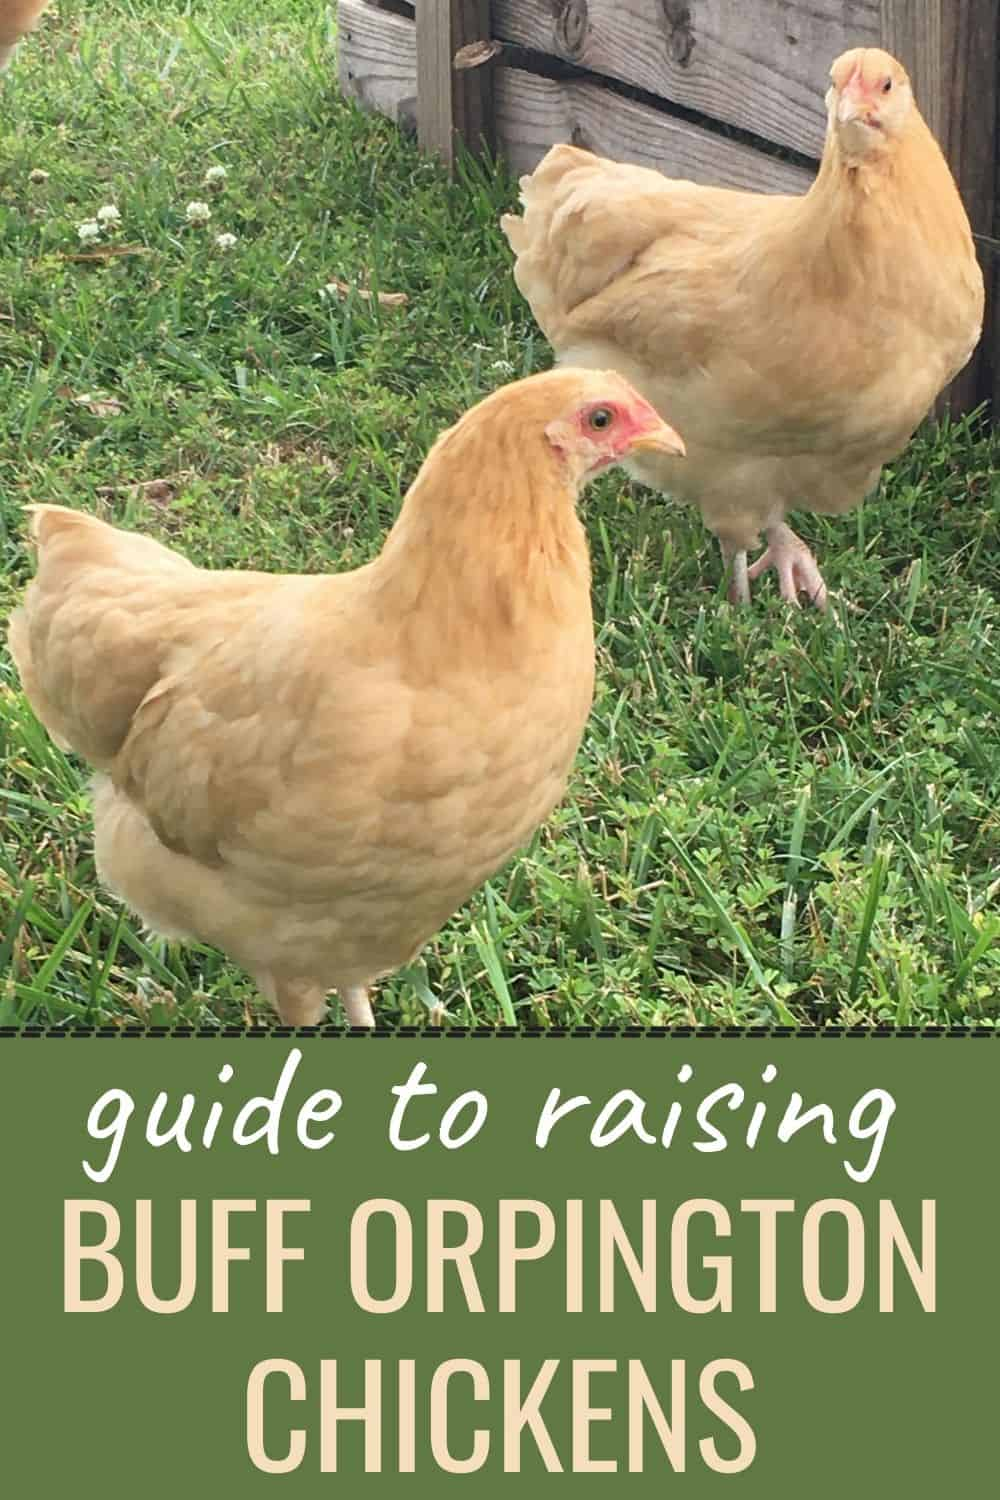 Guide to raising buff orpington chickens